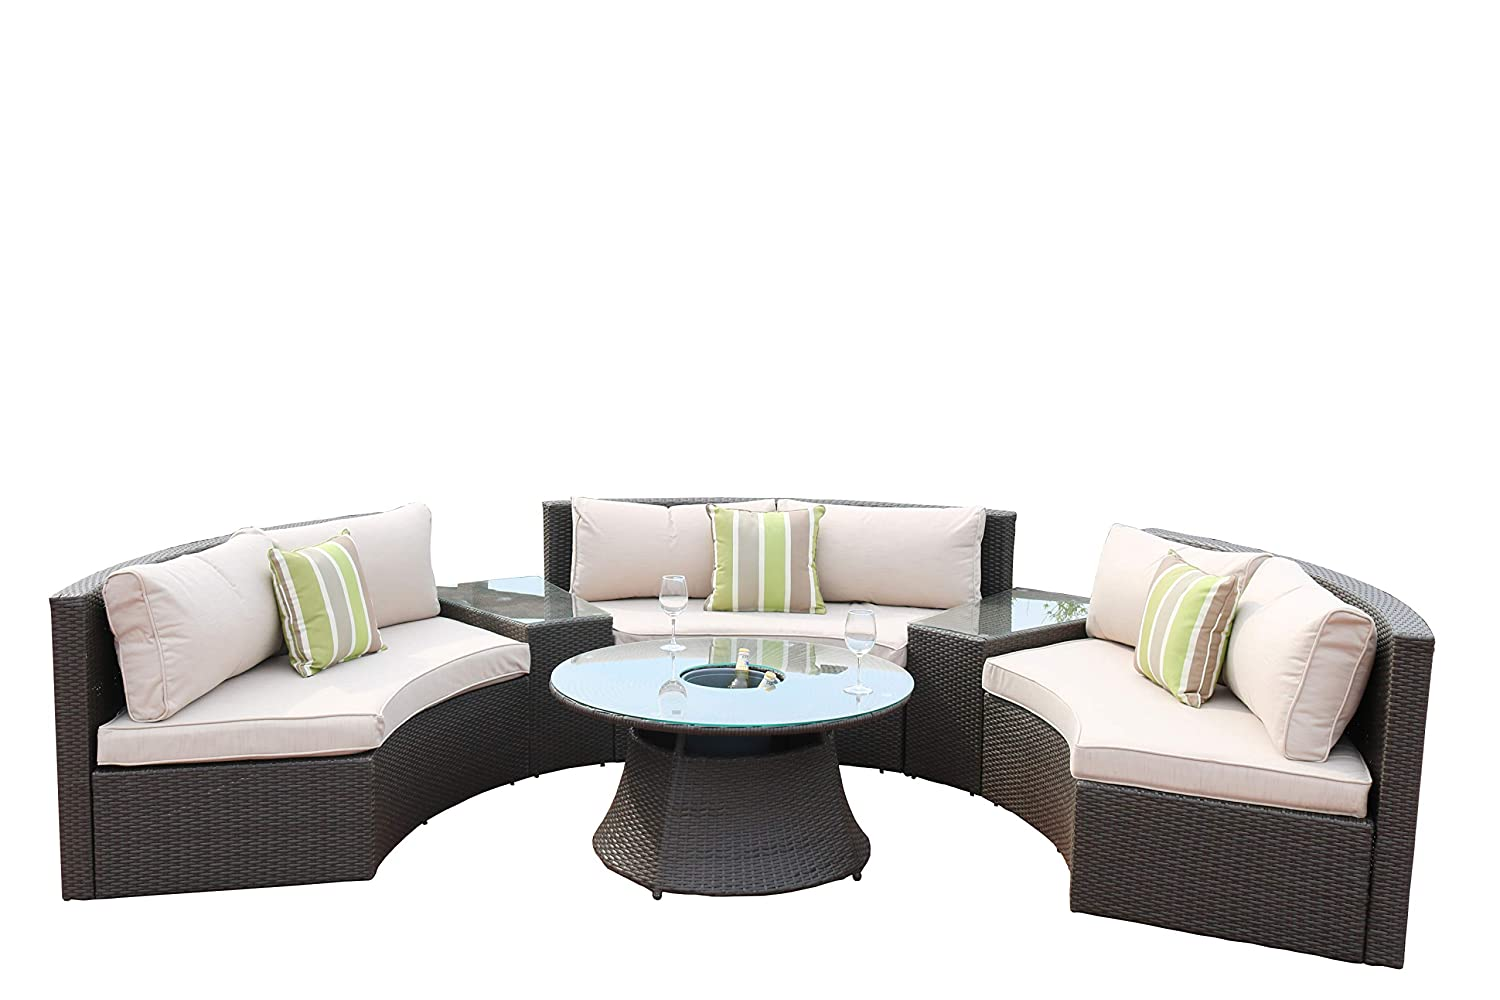 Amazon com direct wicker half moon 6 piece outdoor curved sectional sofa with side table set black wicker garden outdoor